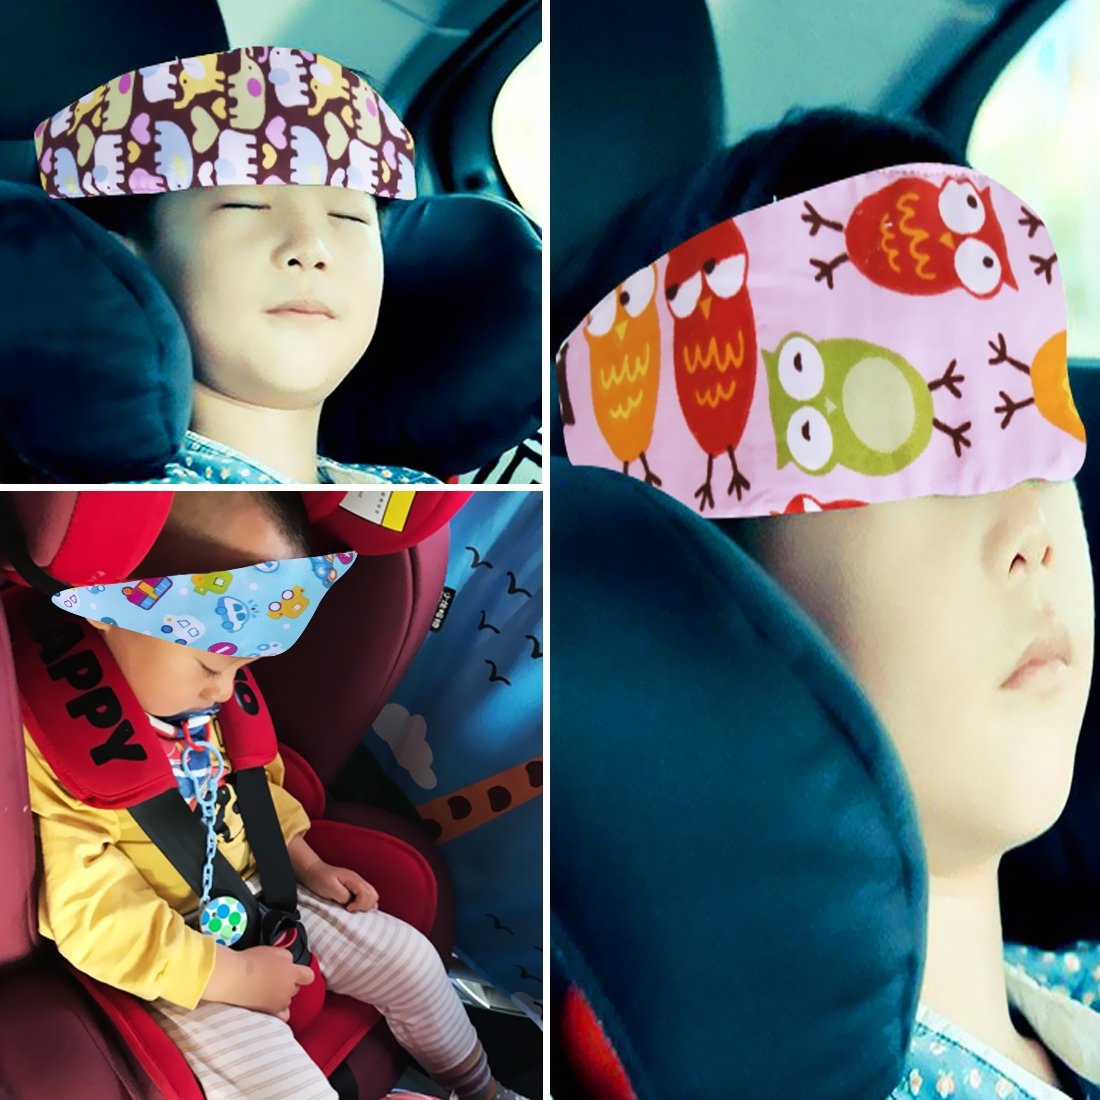 4 Pcs Toddler Car Seat Infants And Baby Head Support Neck Relief Strap Safety Stroller Adjustable Holder Sleep Belt Dollshouse